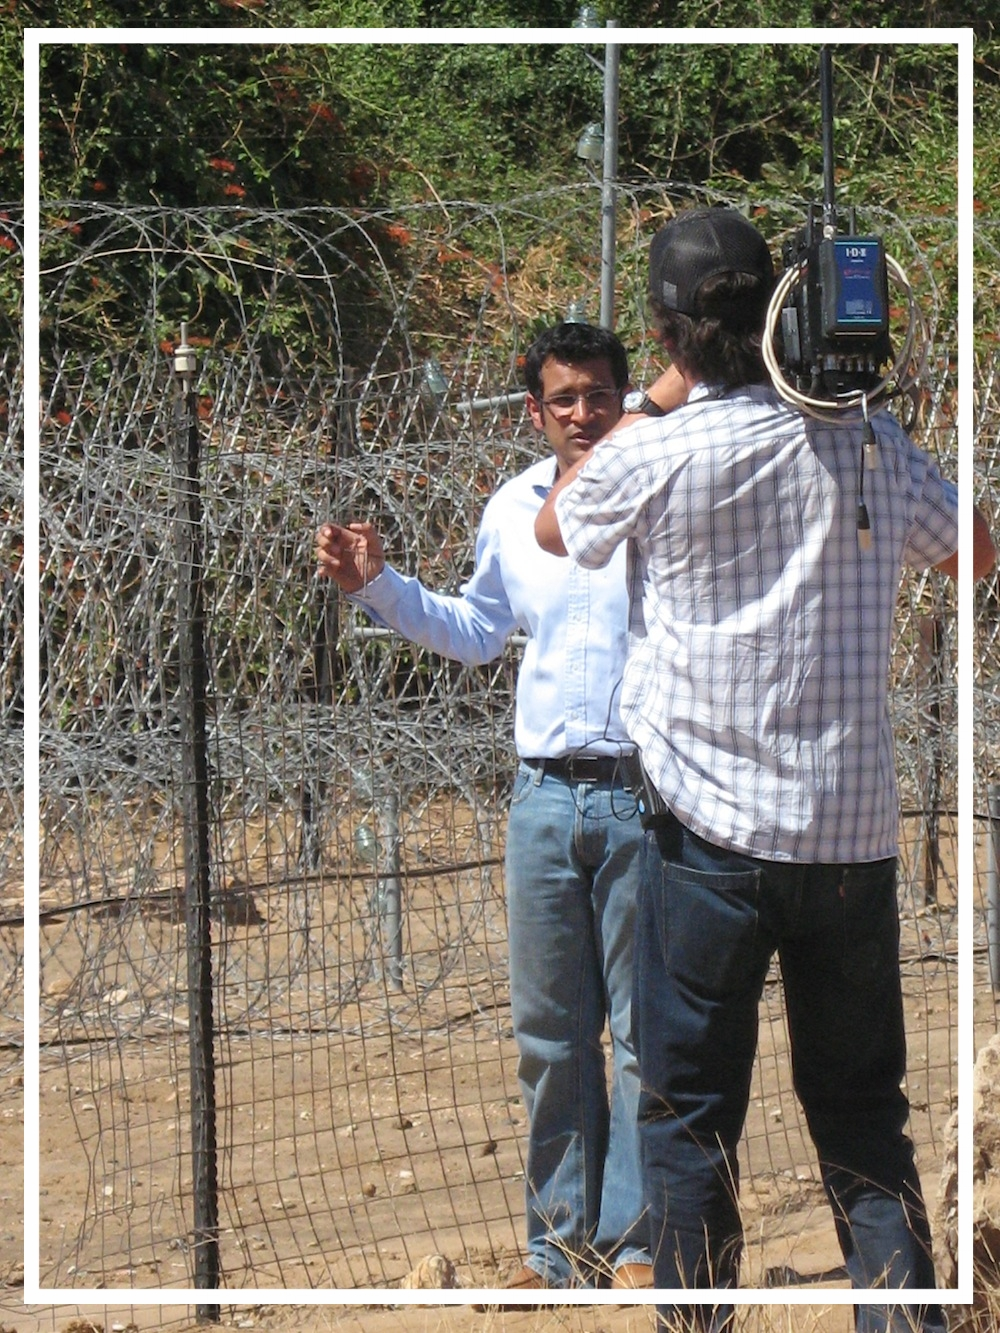 Reporting from the South Africa-Zimbabwe border (Musina, 2008)